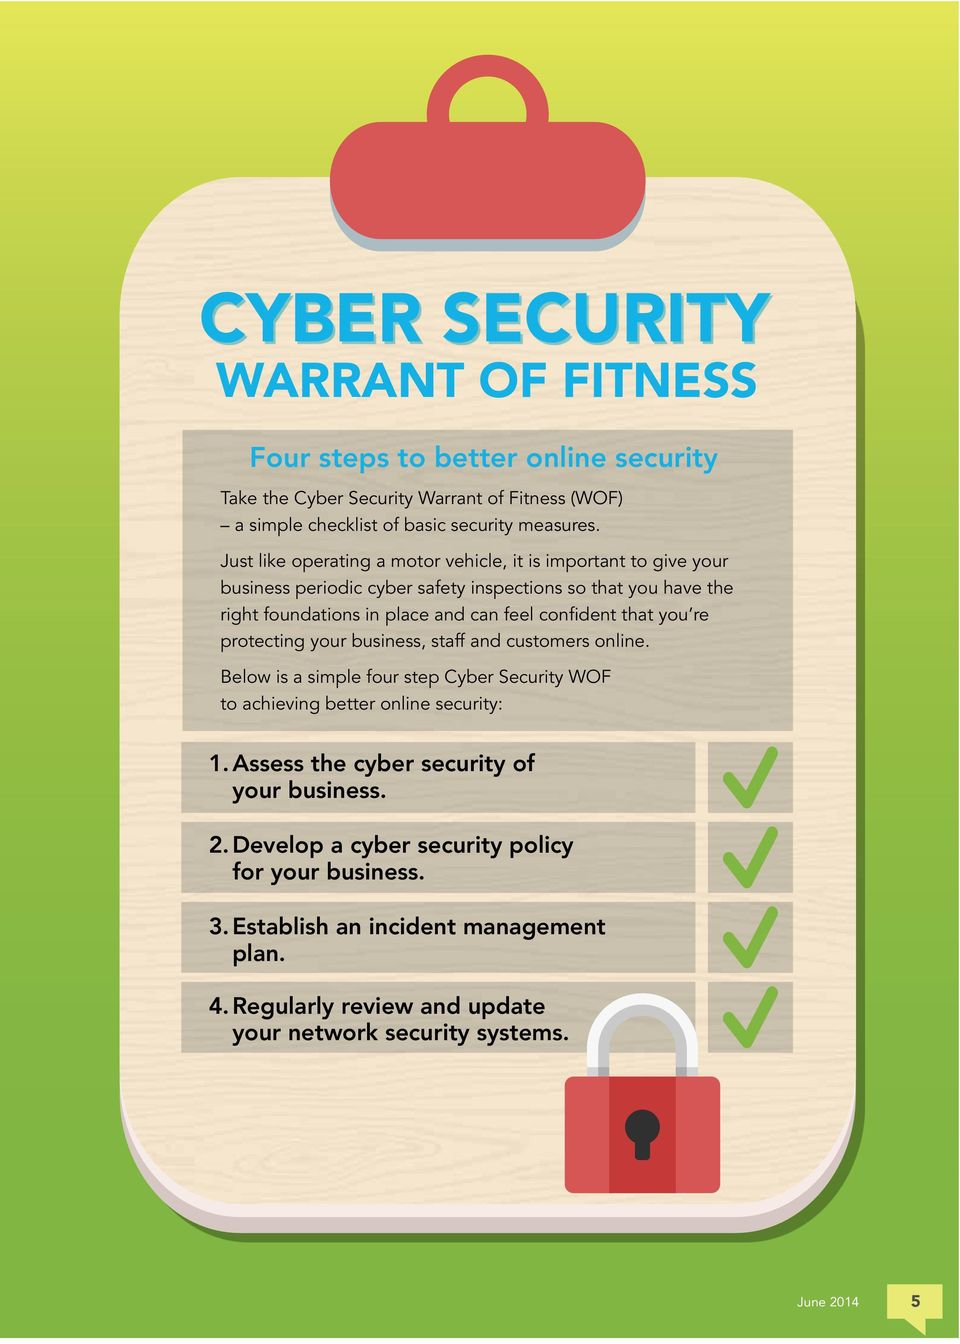 confident that you re protecting your business, staff and customers online. Below is a simple four step Cyber Security WOF to achieving better online security: 1.